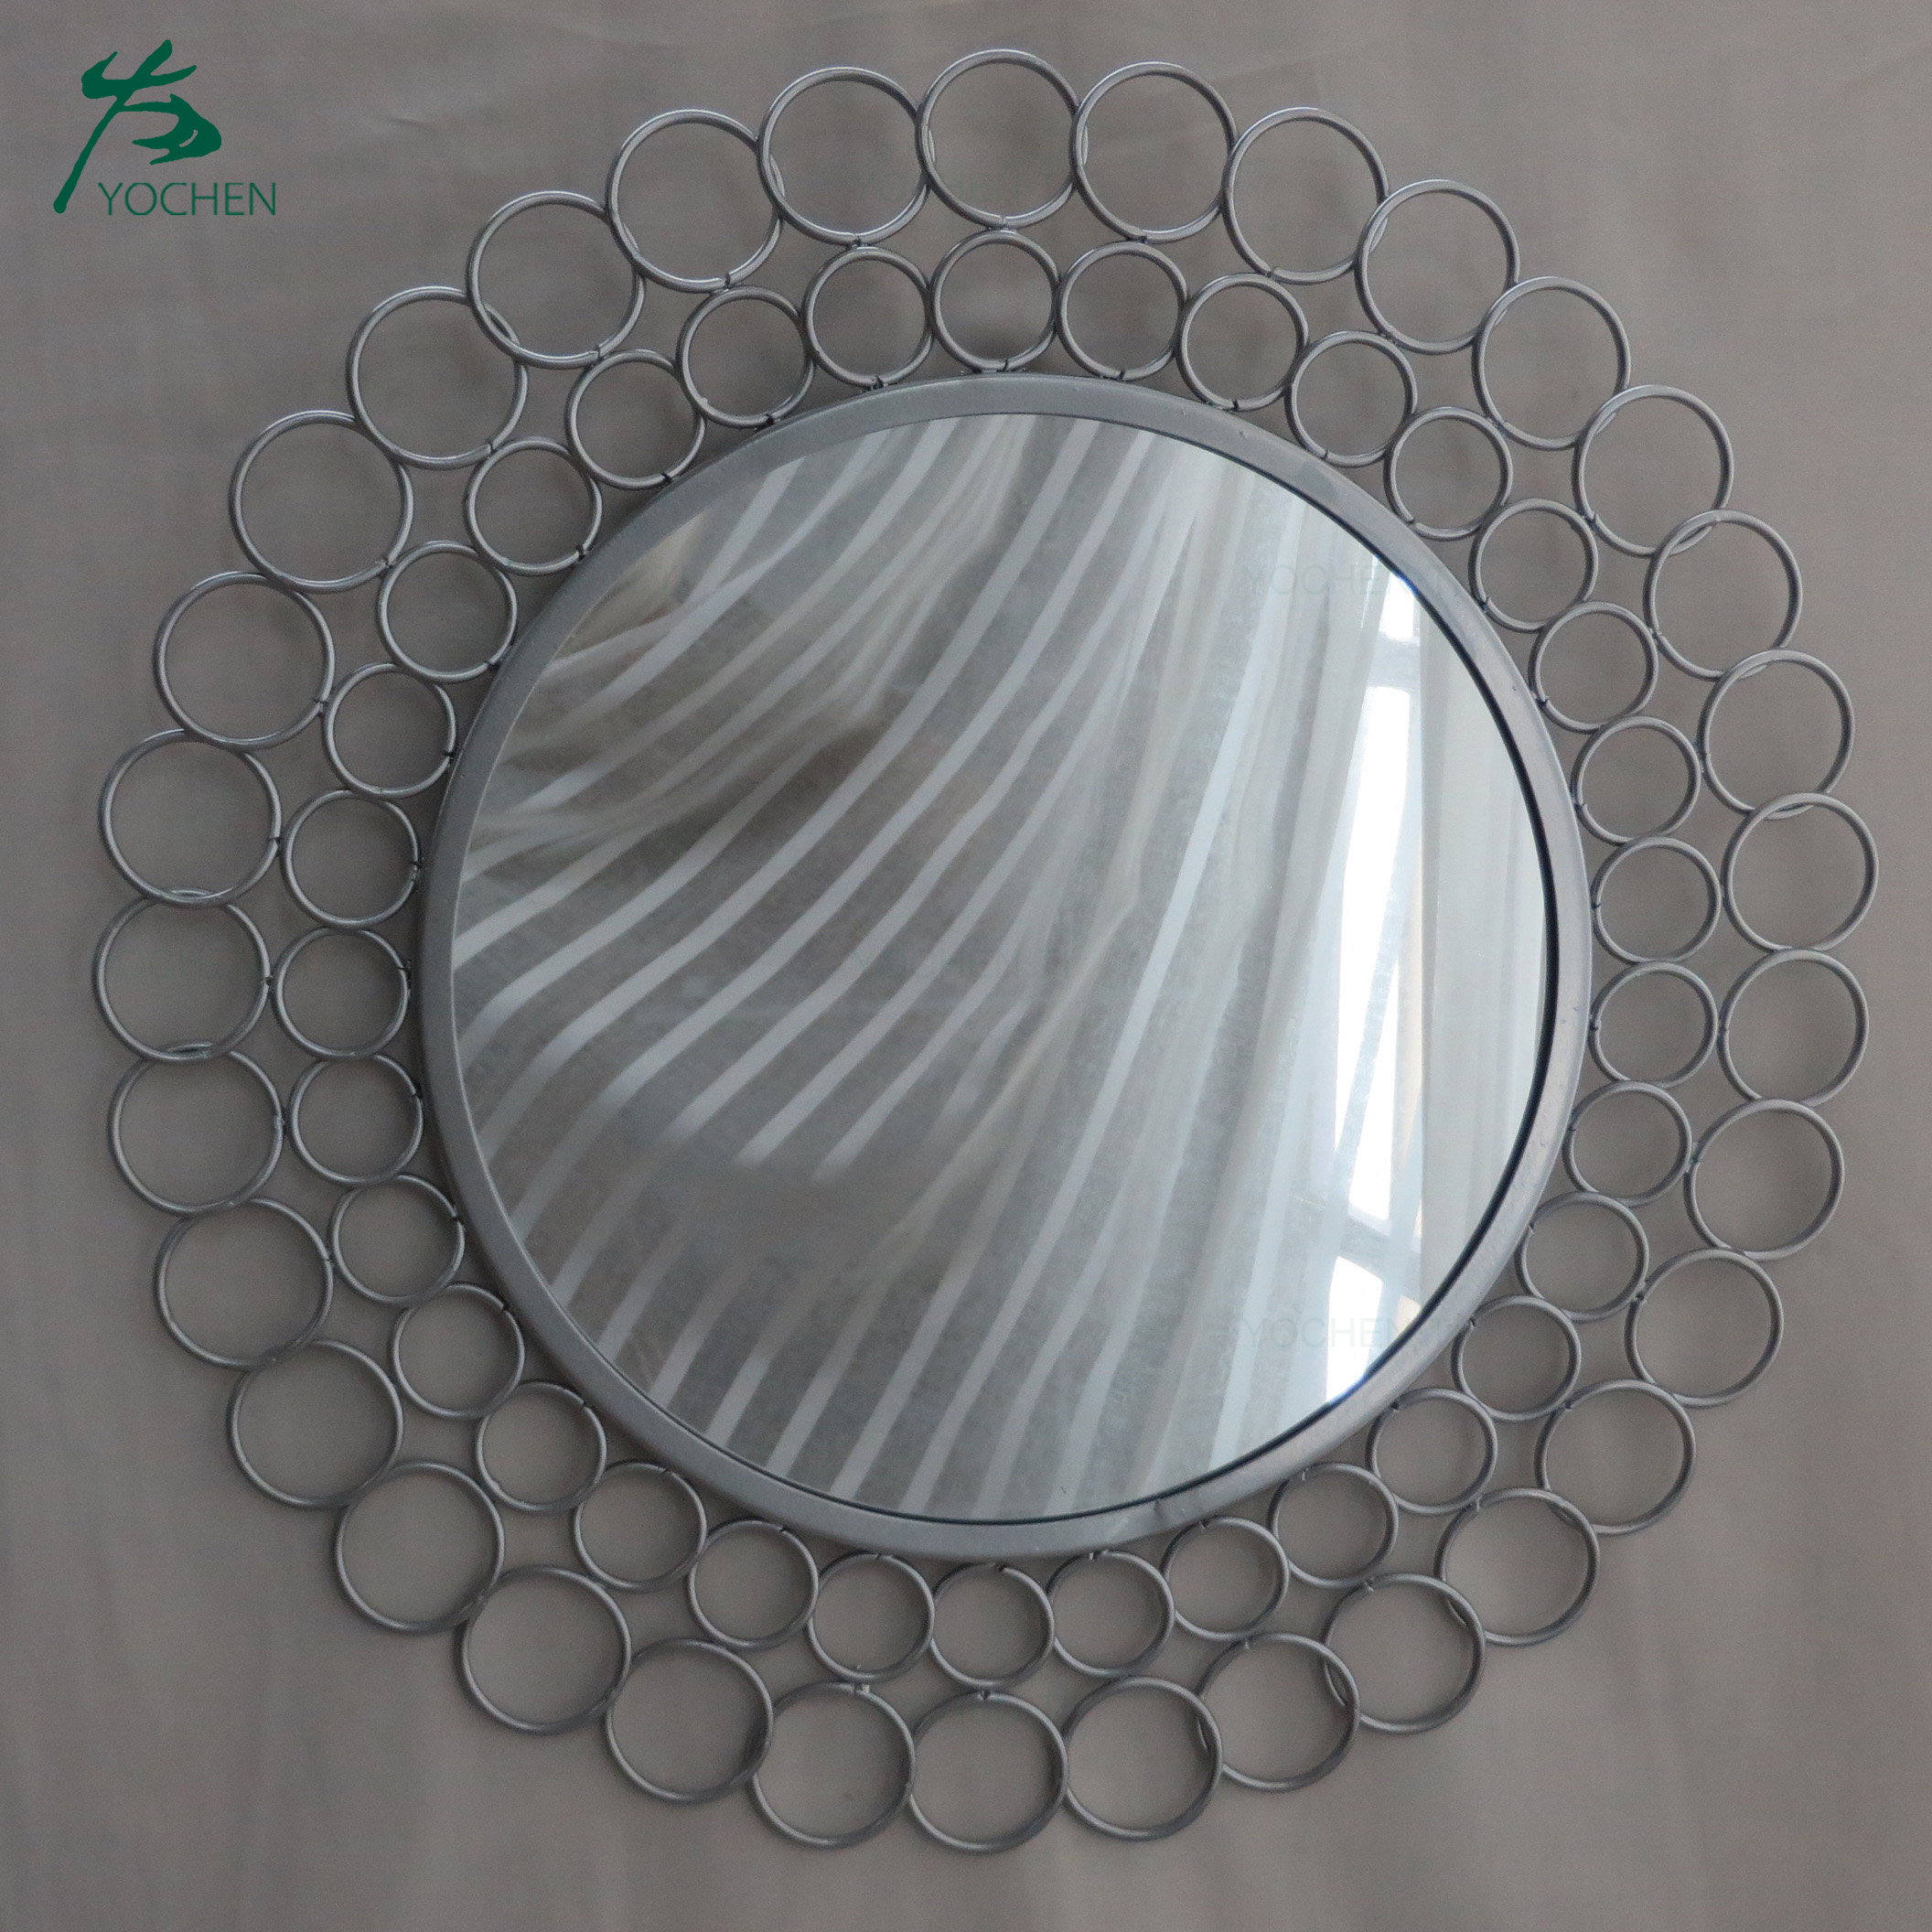 Handcraft home decoration silver wall hanging metal mirror